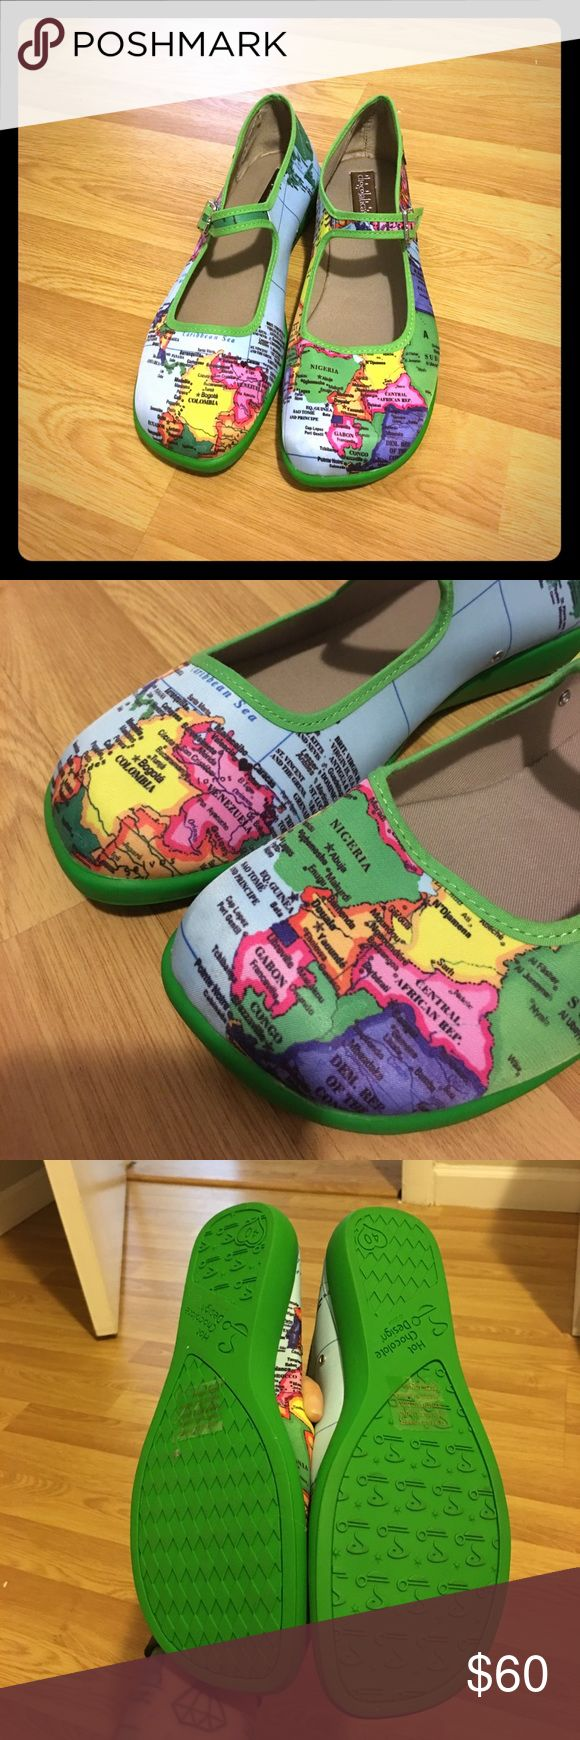 Map Mary Janes: Hot Chocolate Designs NWB Never been worn Mary Janes with map design from Hot Chocolate Designs.  These are adorable and so comfortable.  They are also, from what I can tell, out of circulation on the website.  These aren't flimsy like the cotton Mary Janes you can get at Urban.  Take them home today! Hot Chocolate Designs Shoes Flats & Loafers